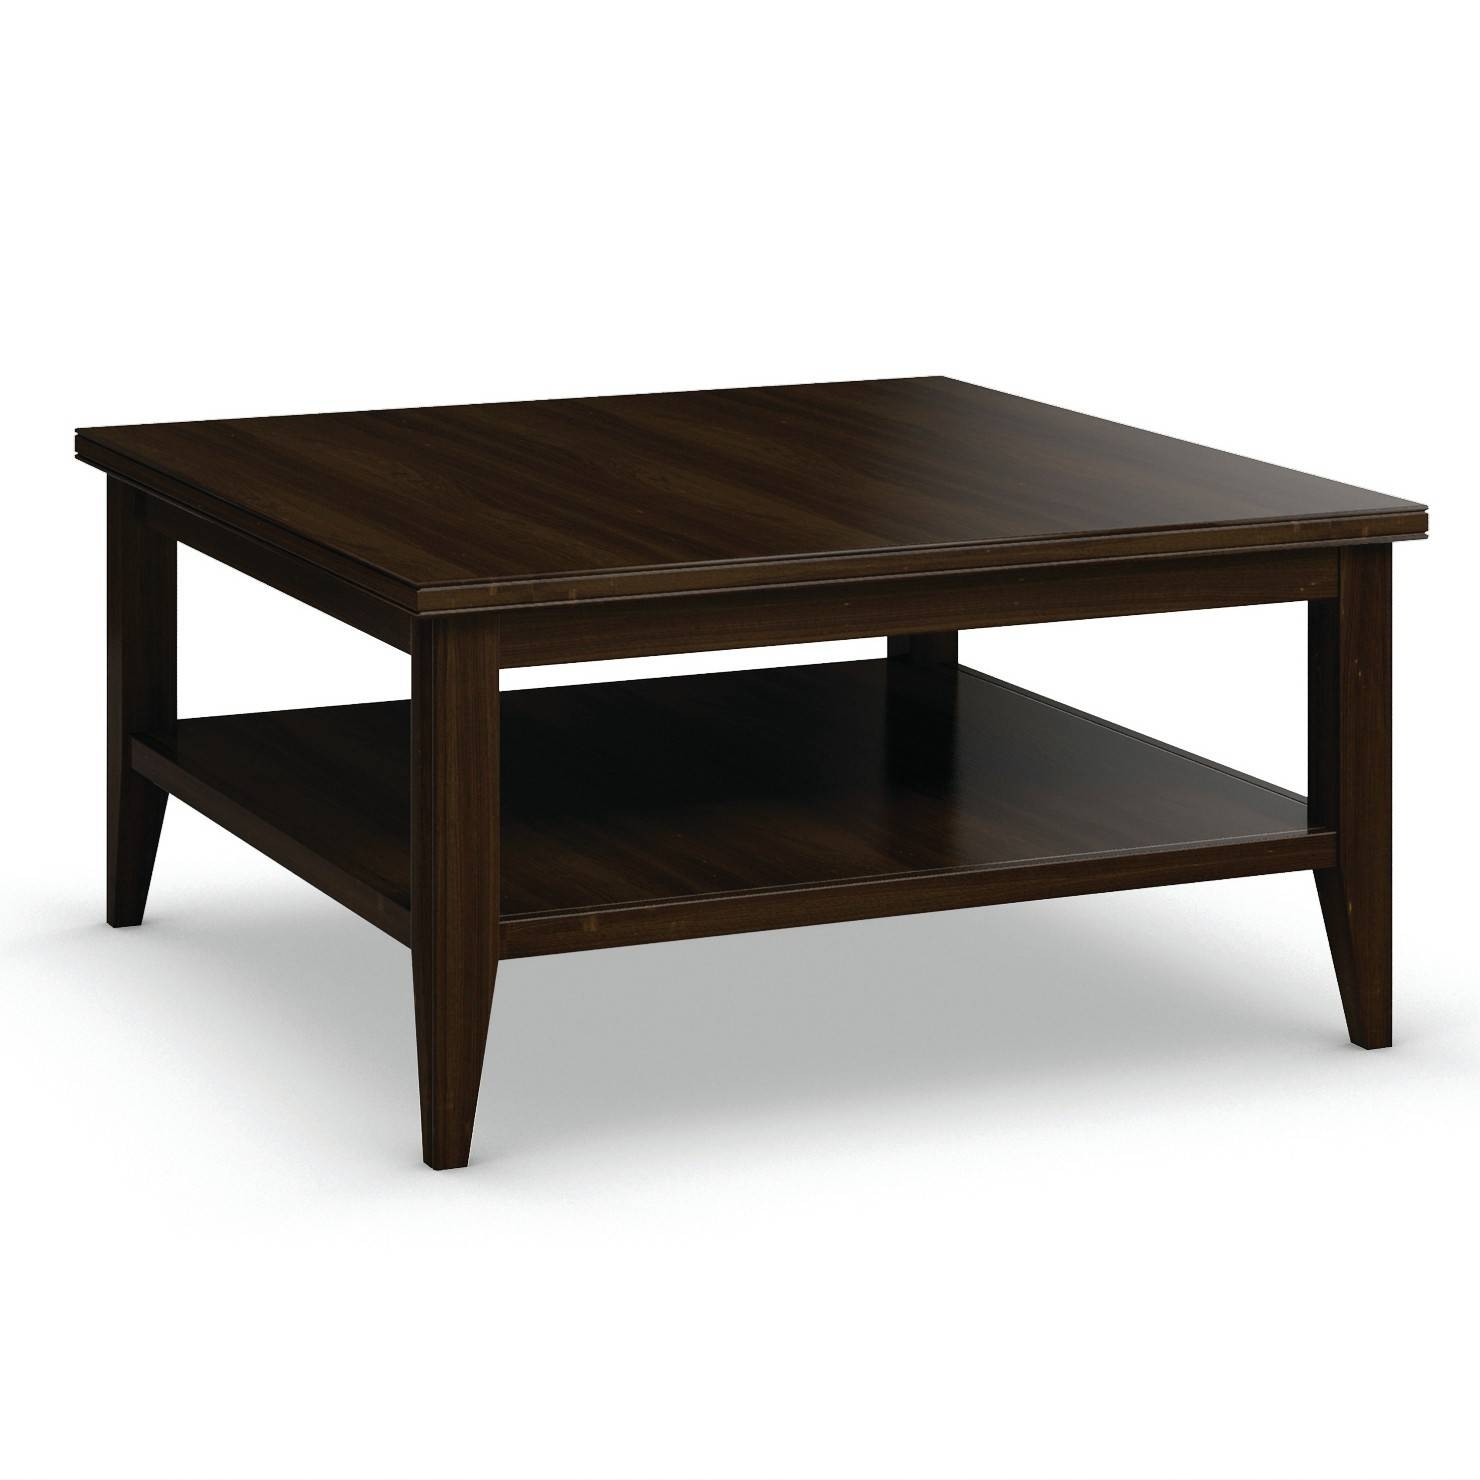 Furniture: Attractive Tribeca Coffee Table Designs Tribeca Coffee pertaining to Tribeca Coffee Tables (Image 11 of 30)